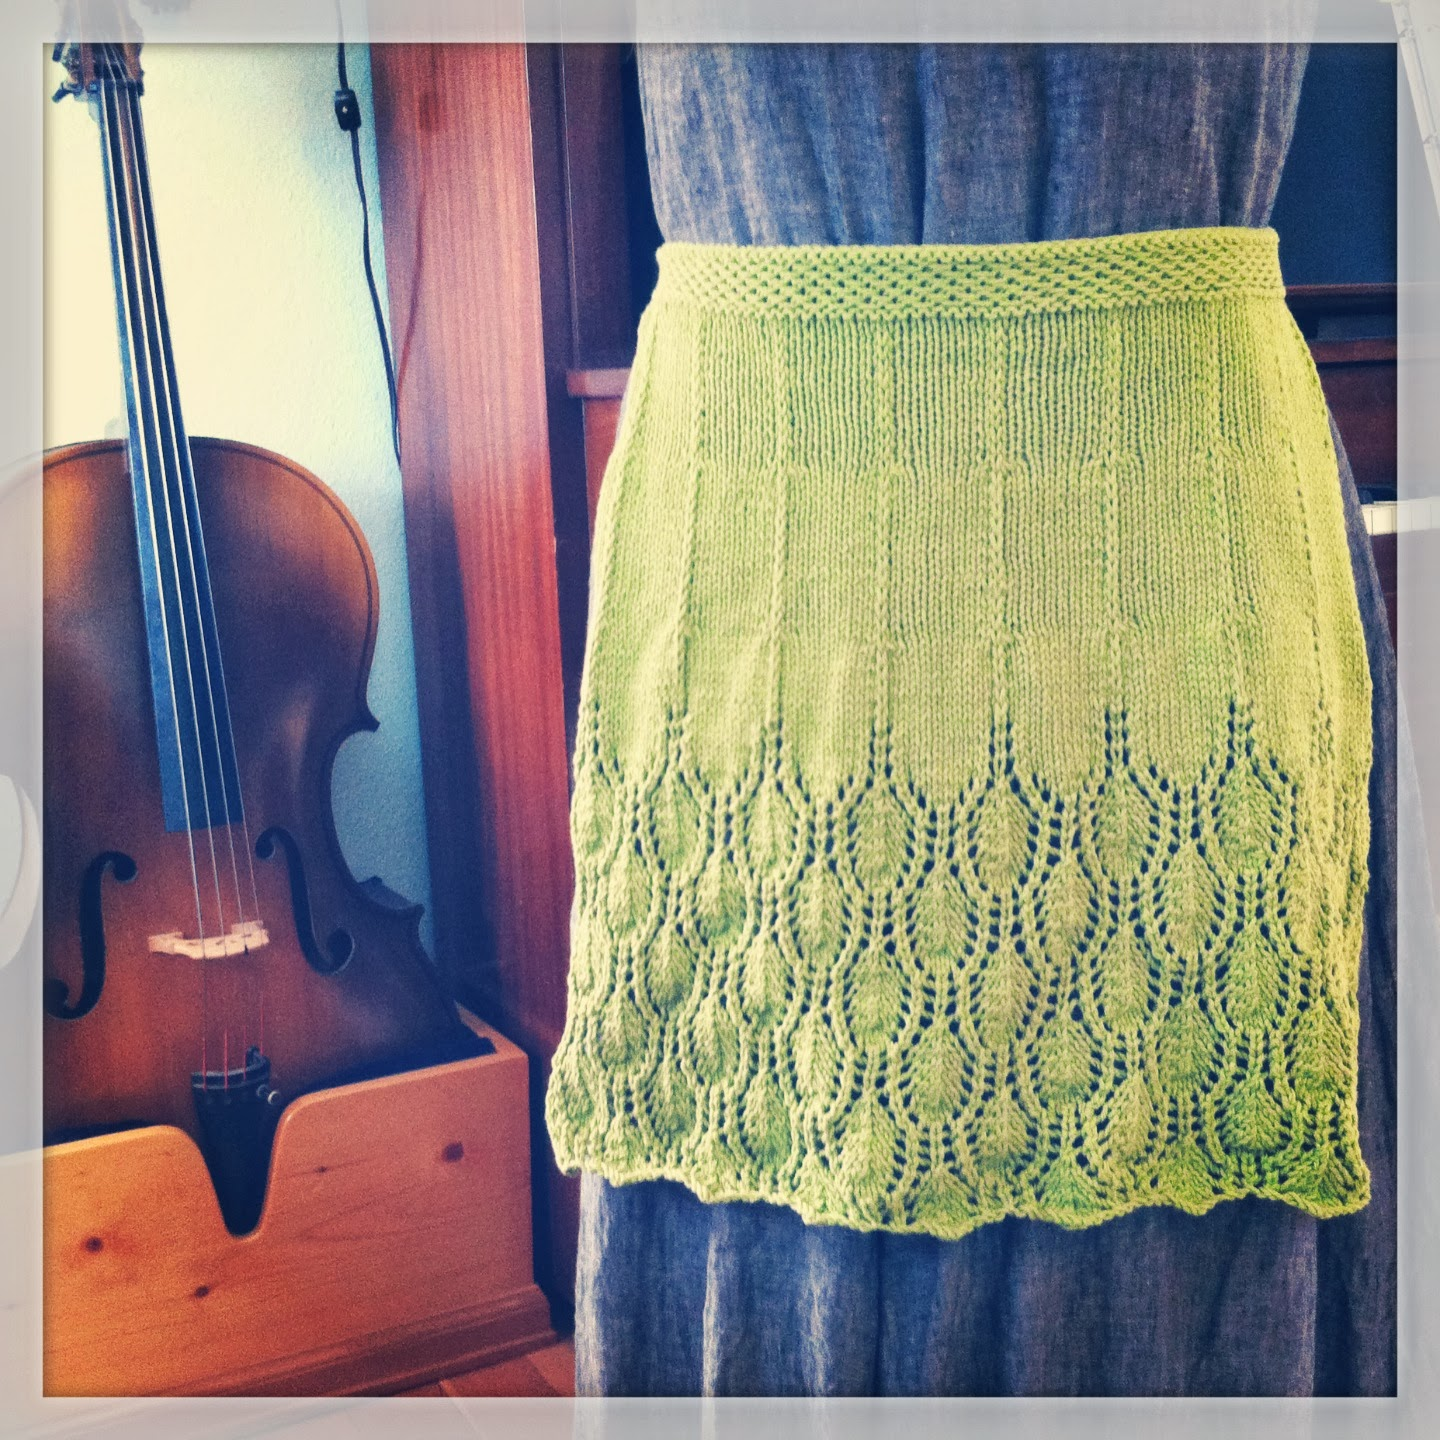 Knitted Apron Patterns A Knitting Blog